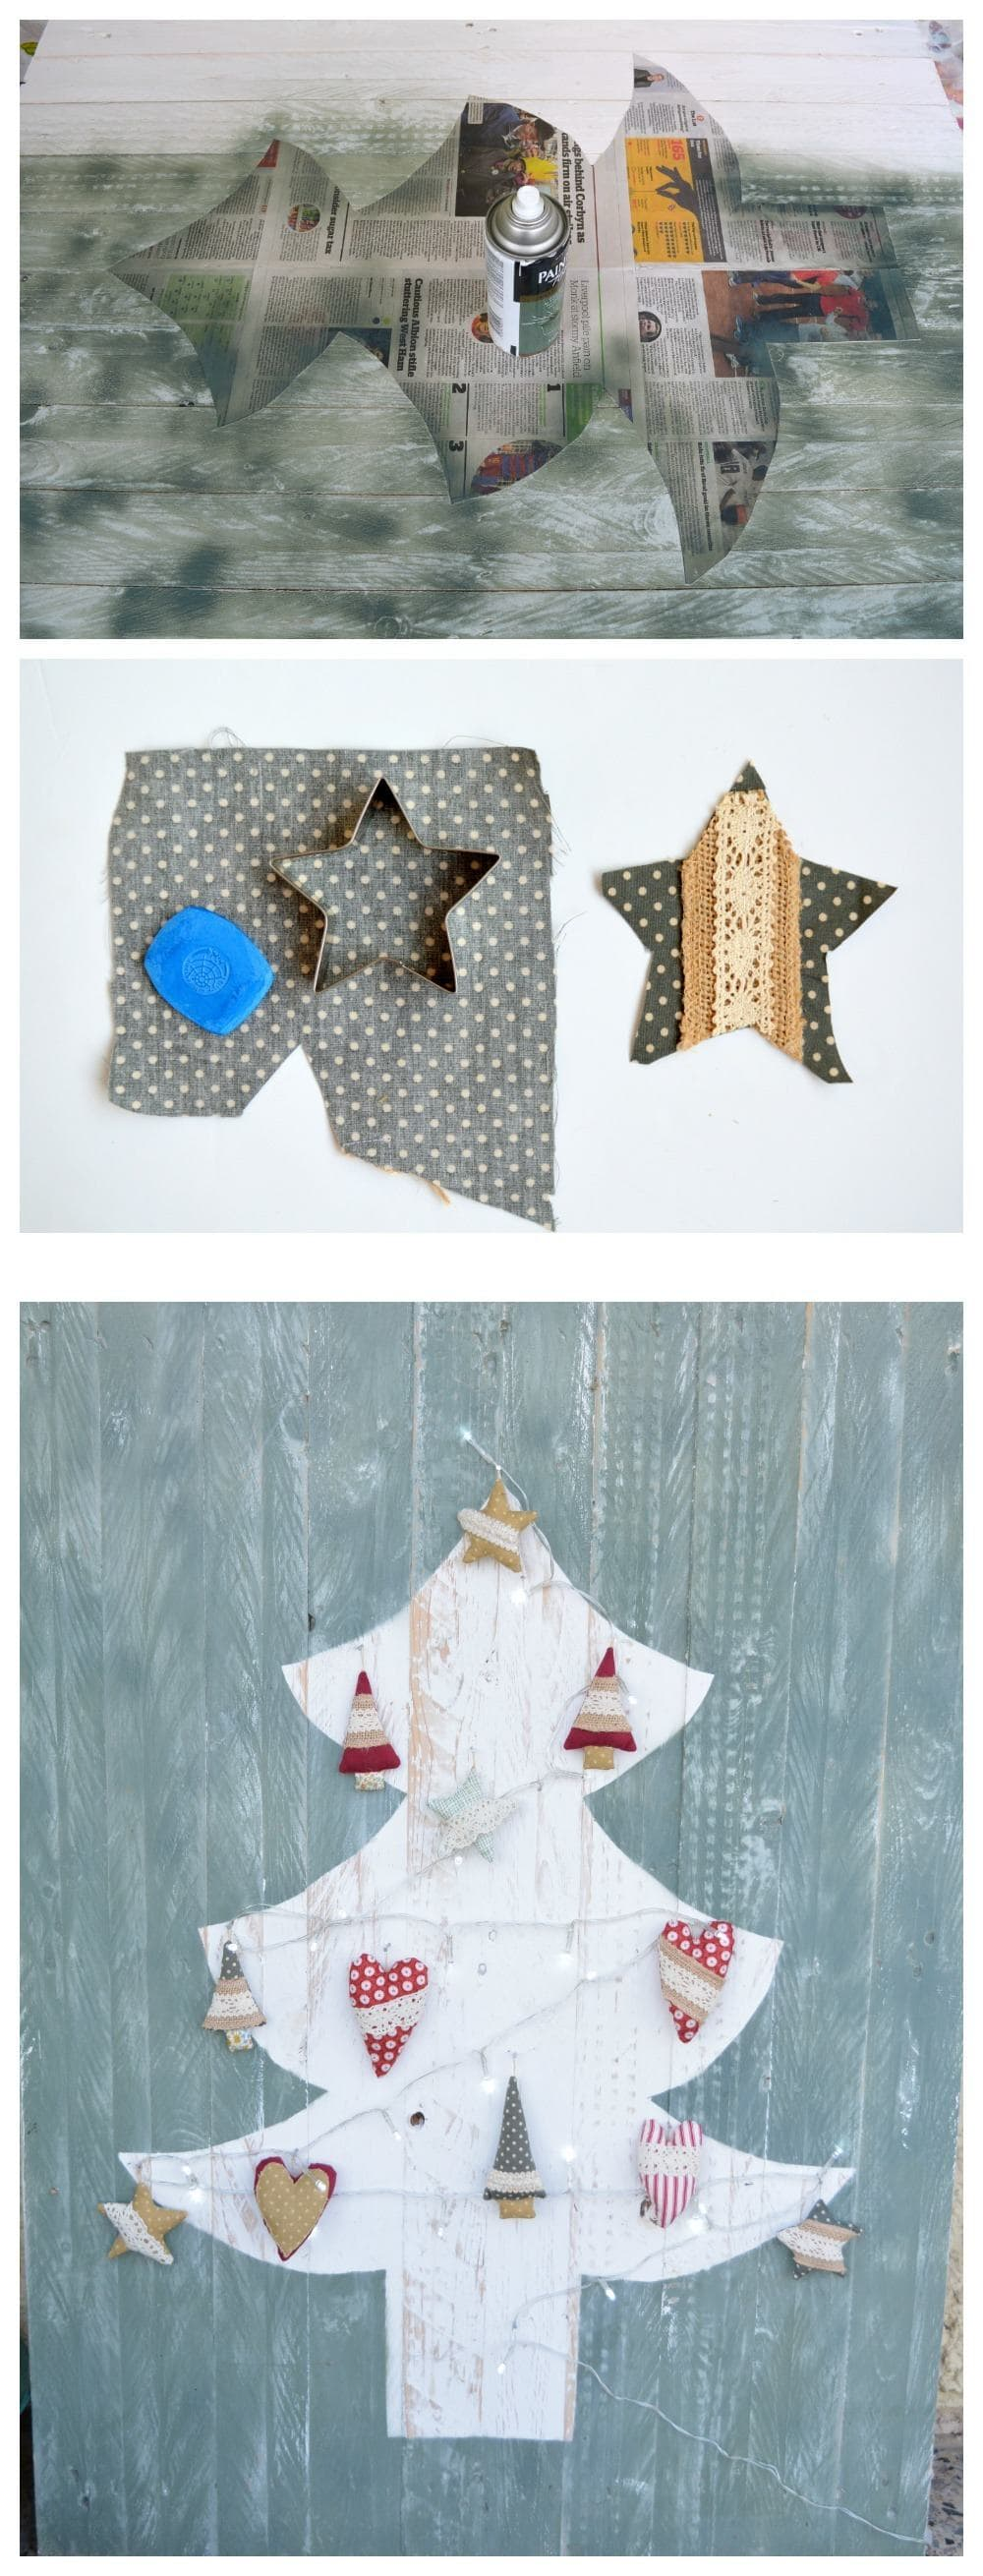 Handsewn Christmas decorations